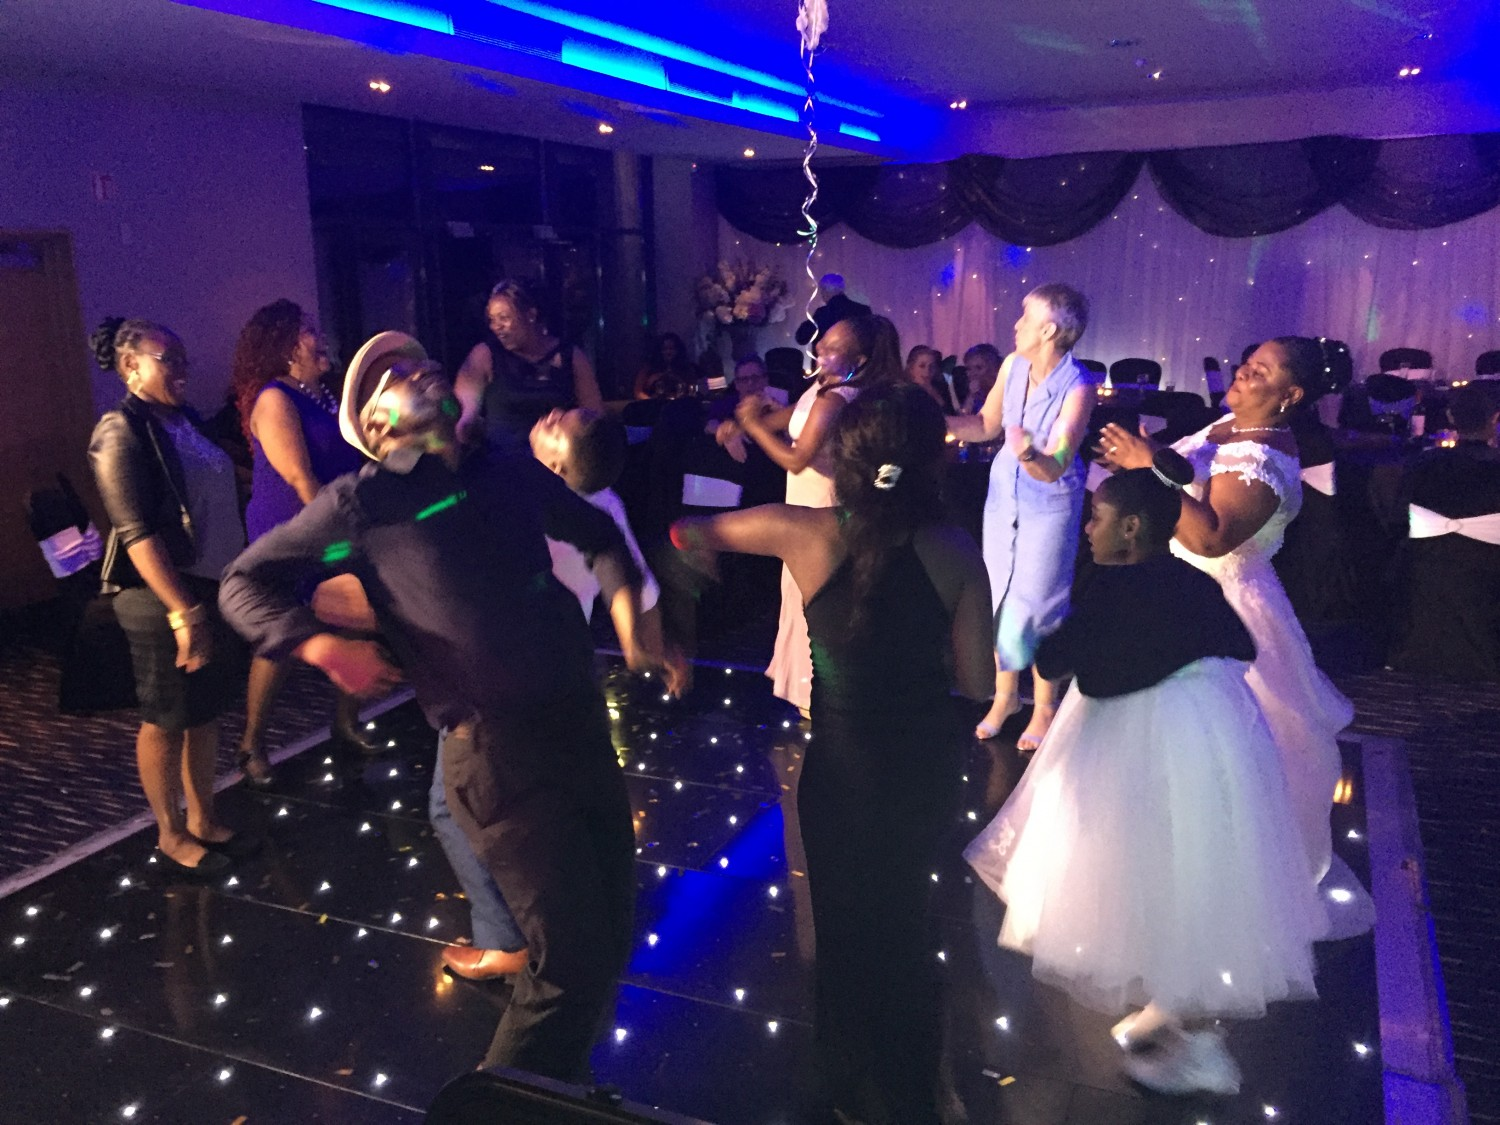 crowd shot Clandeboye lodge hotel the wedding disco 2015-10-07 22.26.24